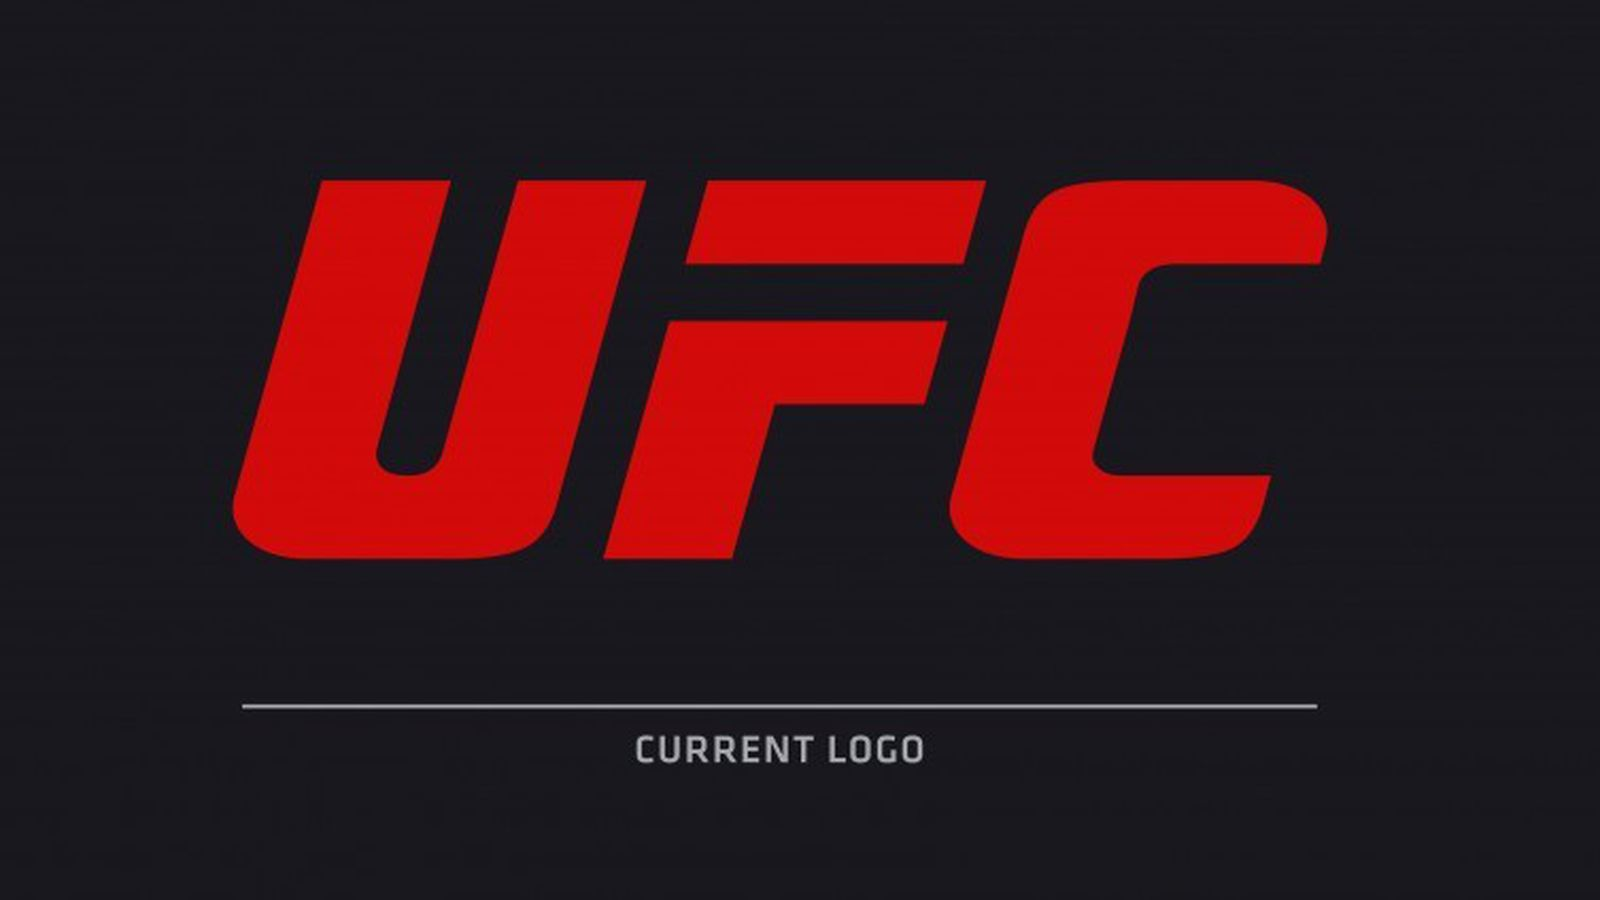 Ufc Reveals New Logo More Visual Changes To Broadcasts Posters And Websites Bloody Elbow